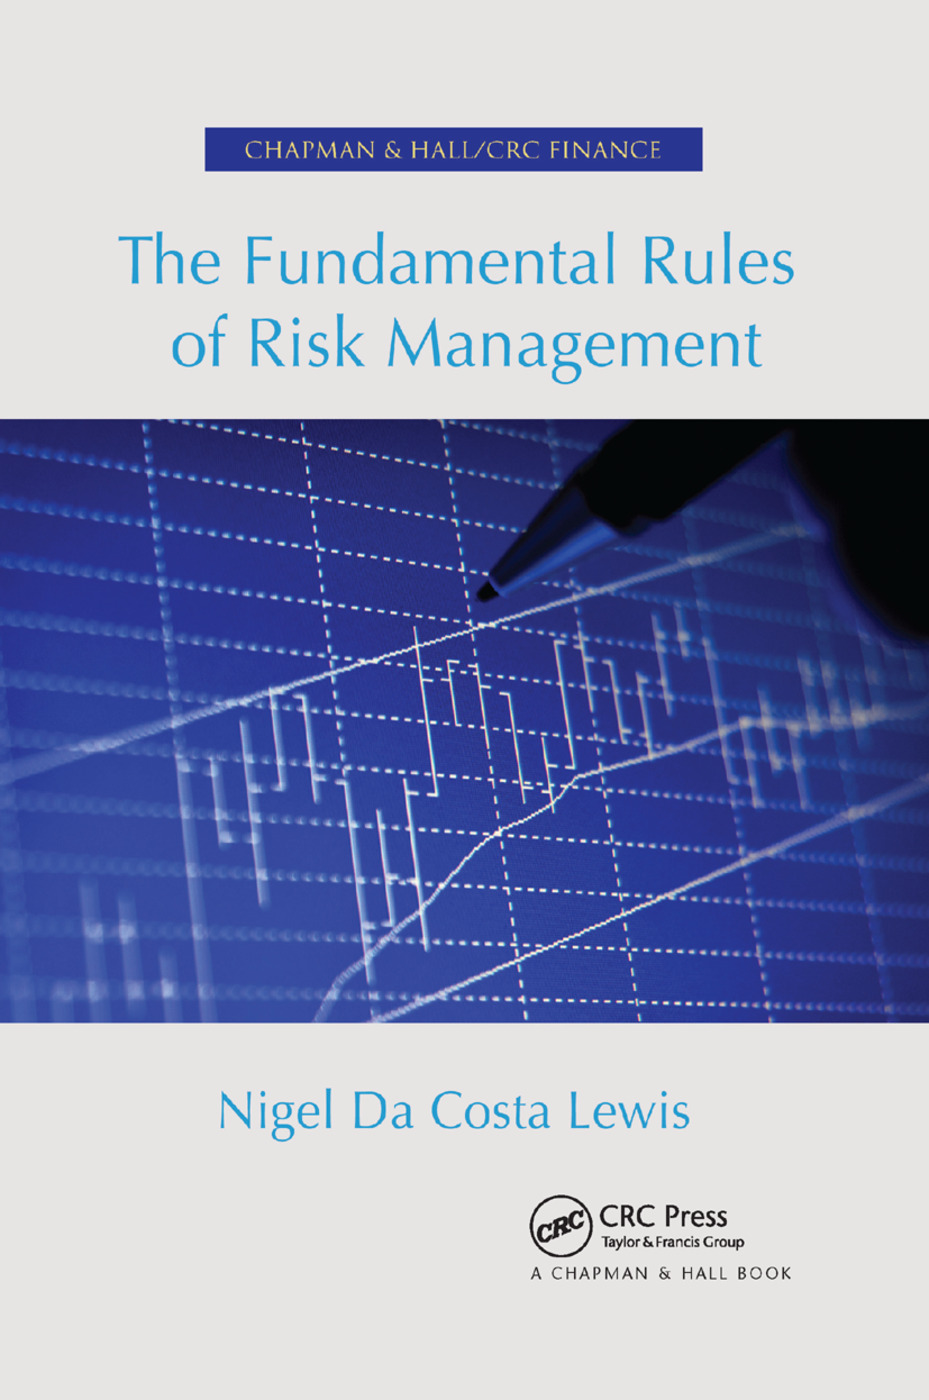 The Fundamental Rules of Risk Management